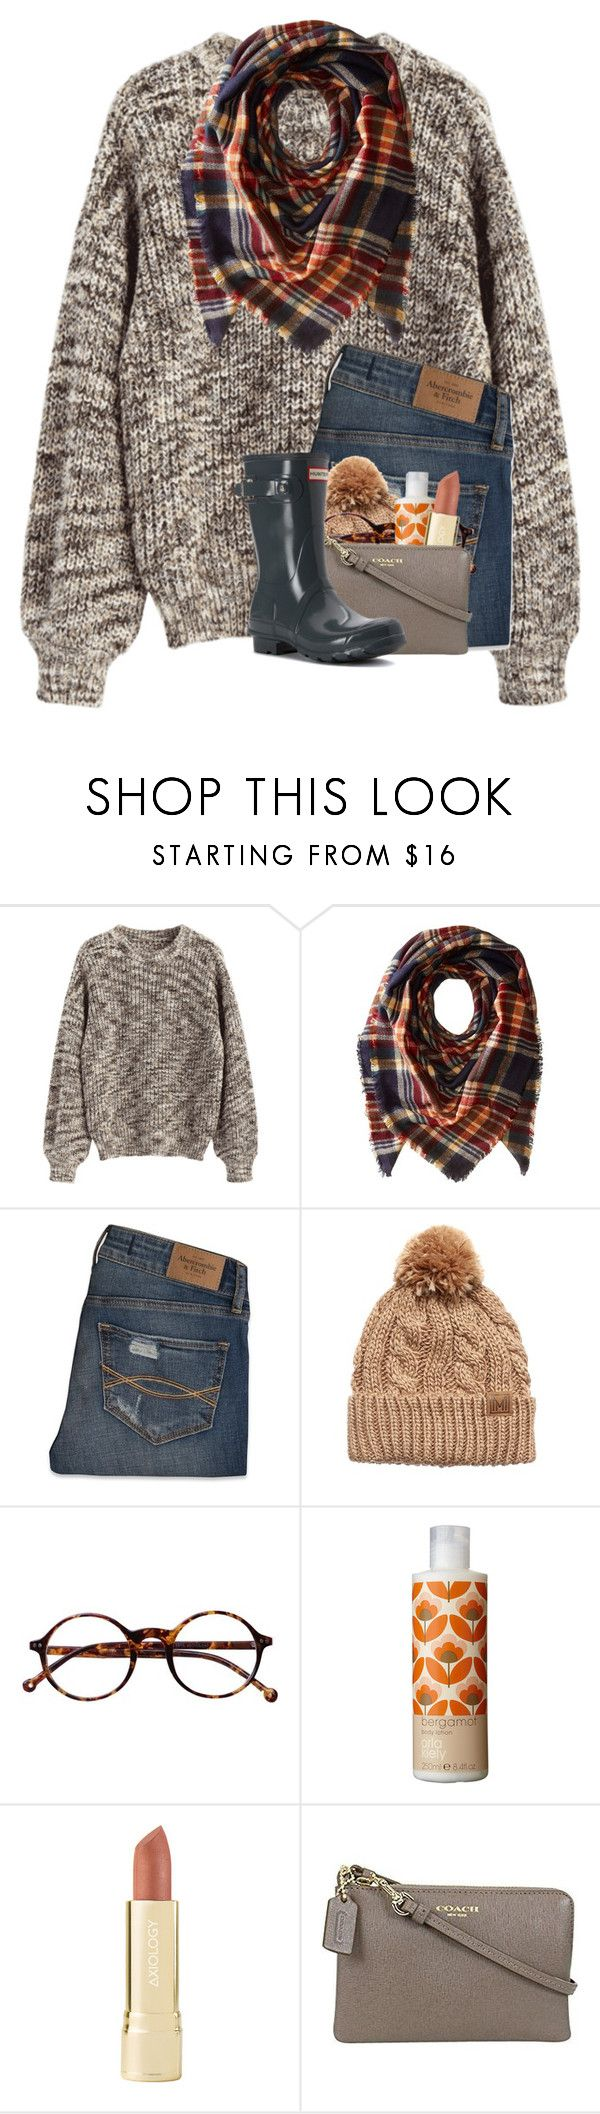 """january contest "" by madelinelurene ❤ liked on Polyvore featuring Collection XIIX, Abercrombie & Fitch, Retrò, Orla Kiely, Axiology, Coach and Hunter"